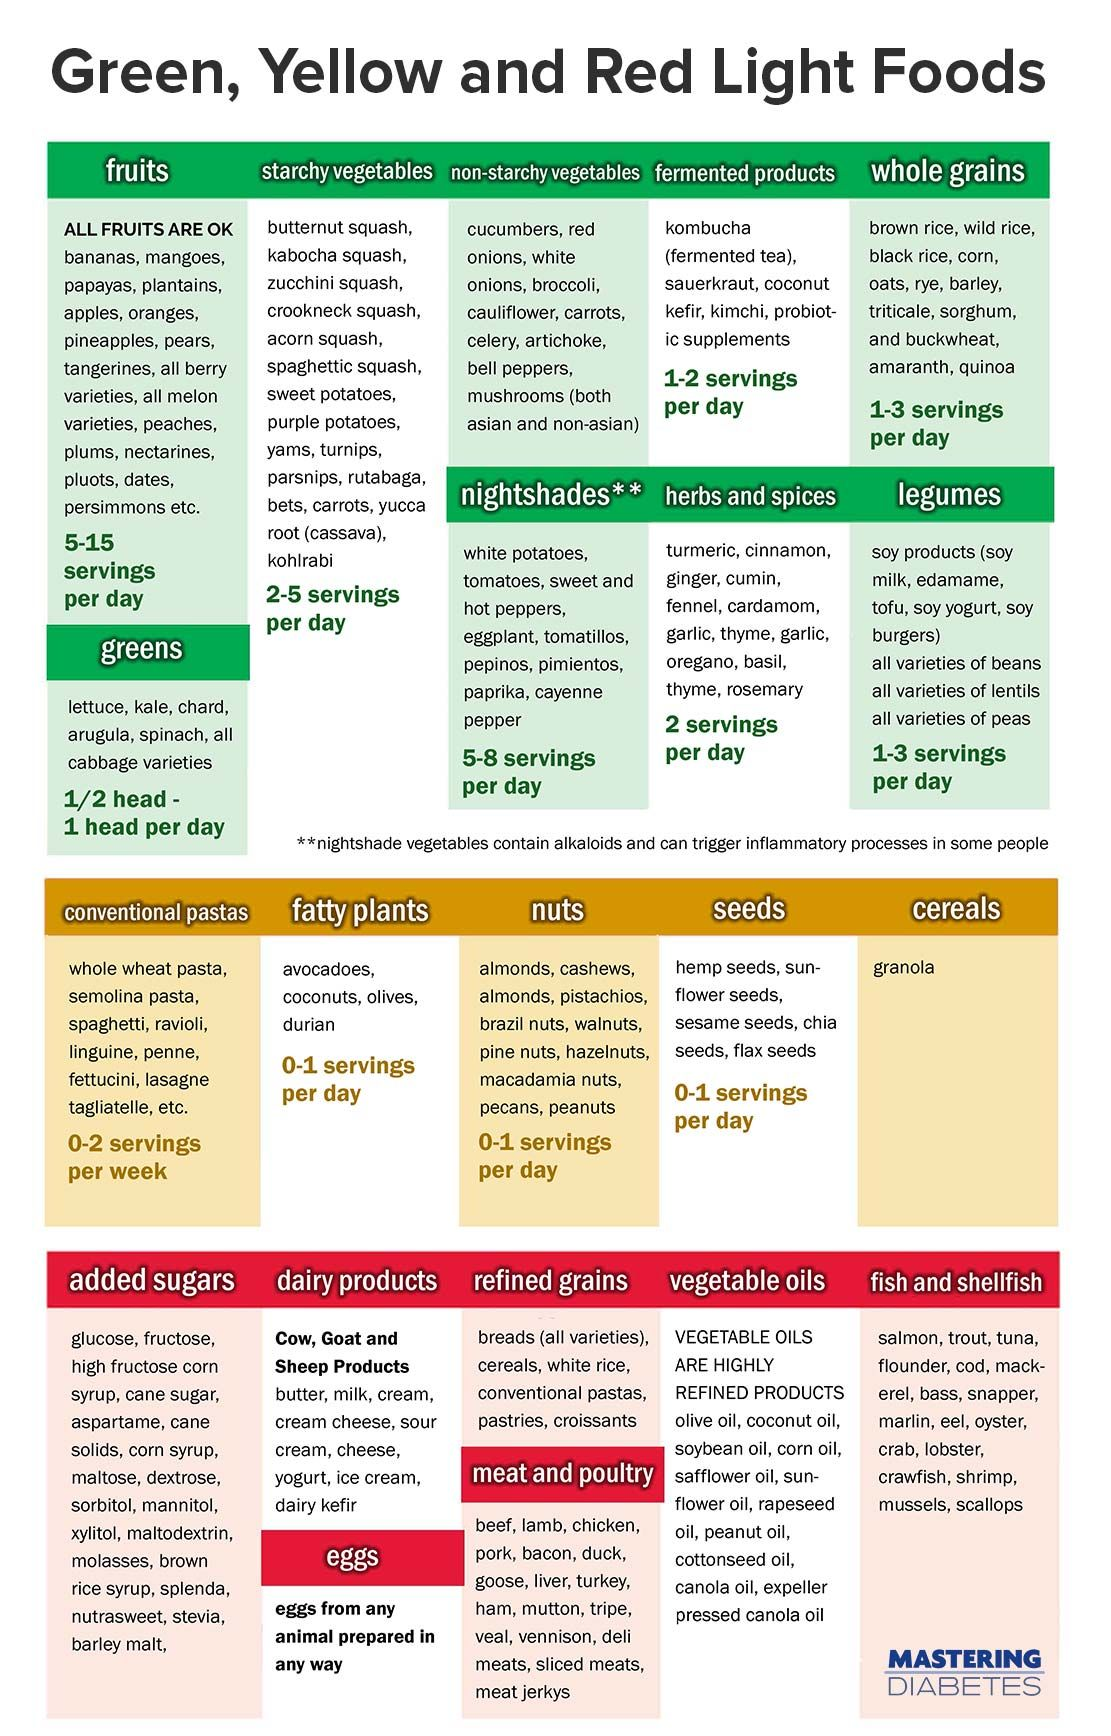 Green-Yellow-and-Red-Light-Foods | Loving This! in 2019 ...